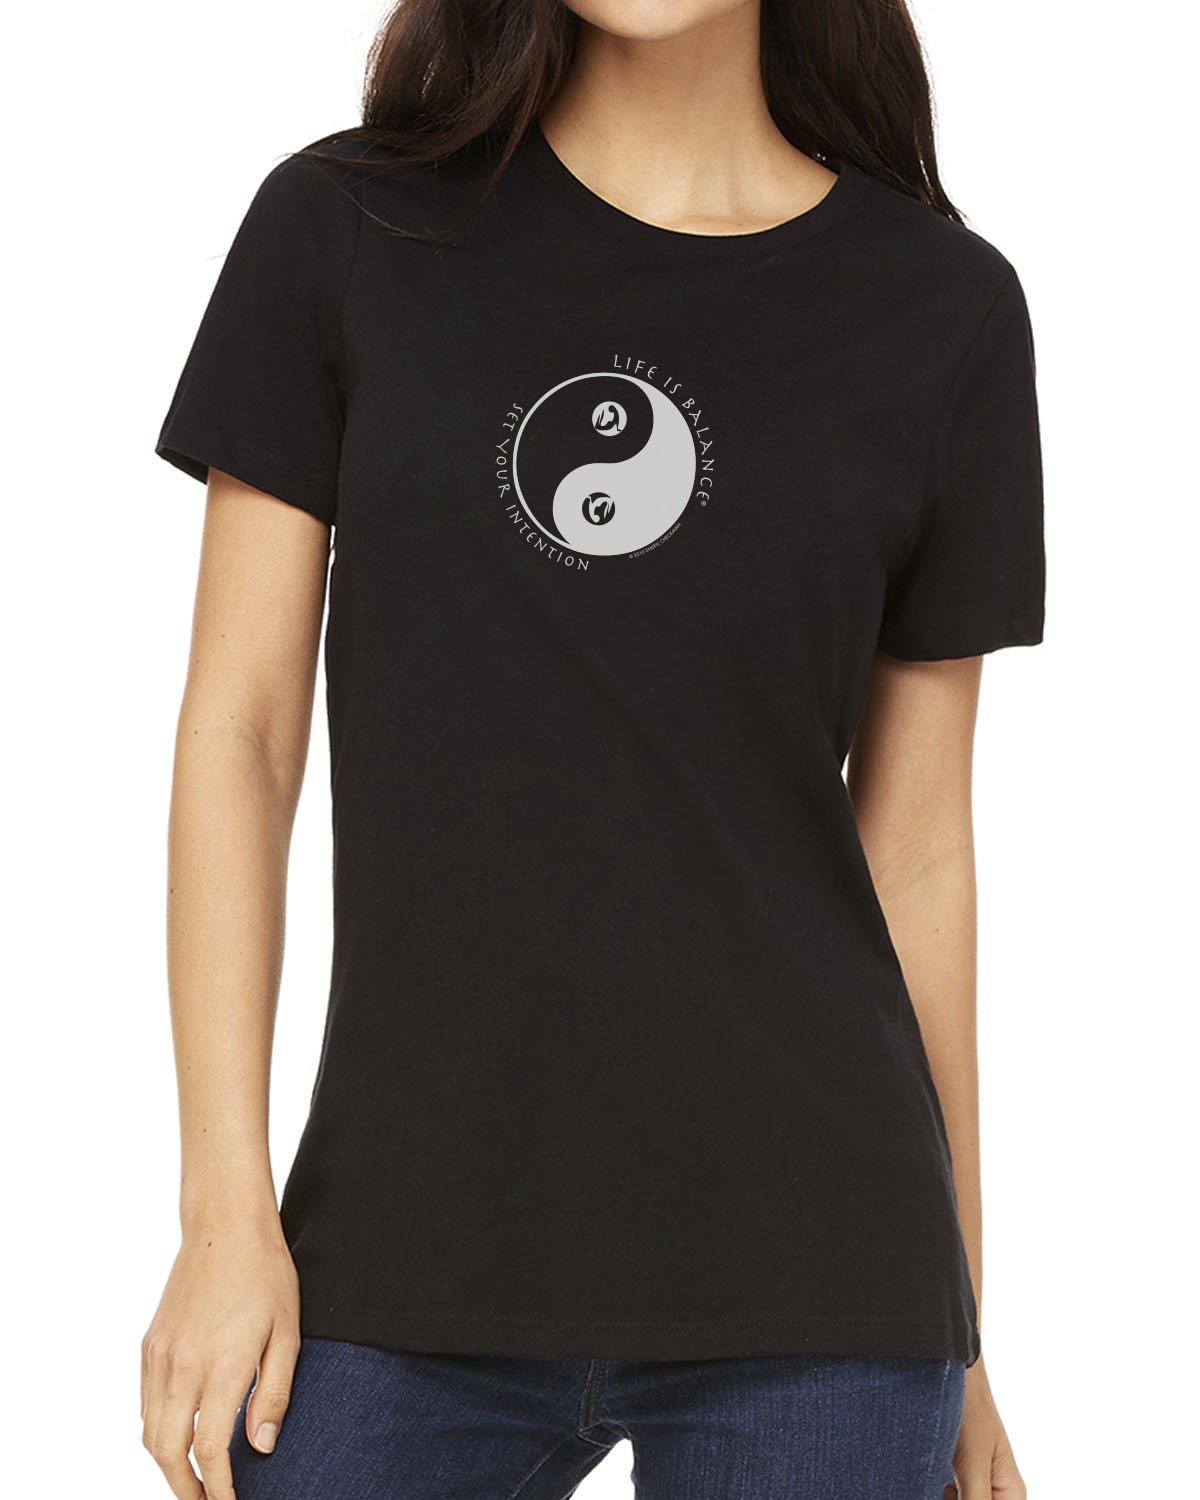 Women's short sleeve yoga t-shirt (Black)